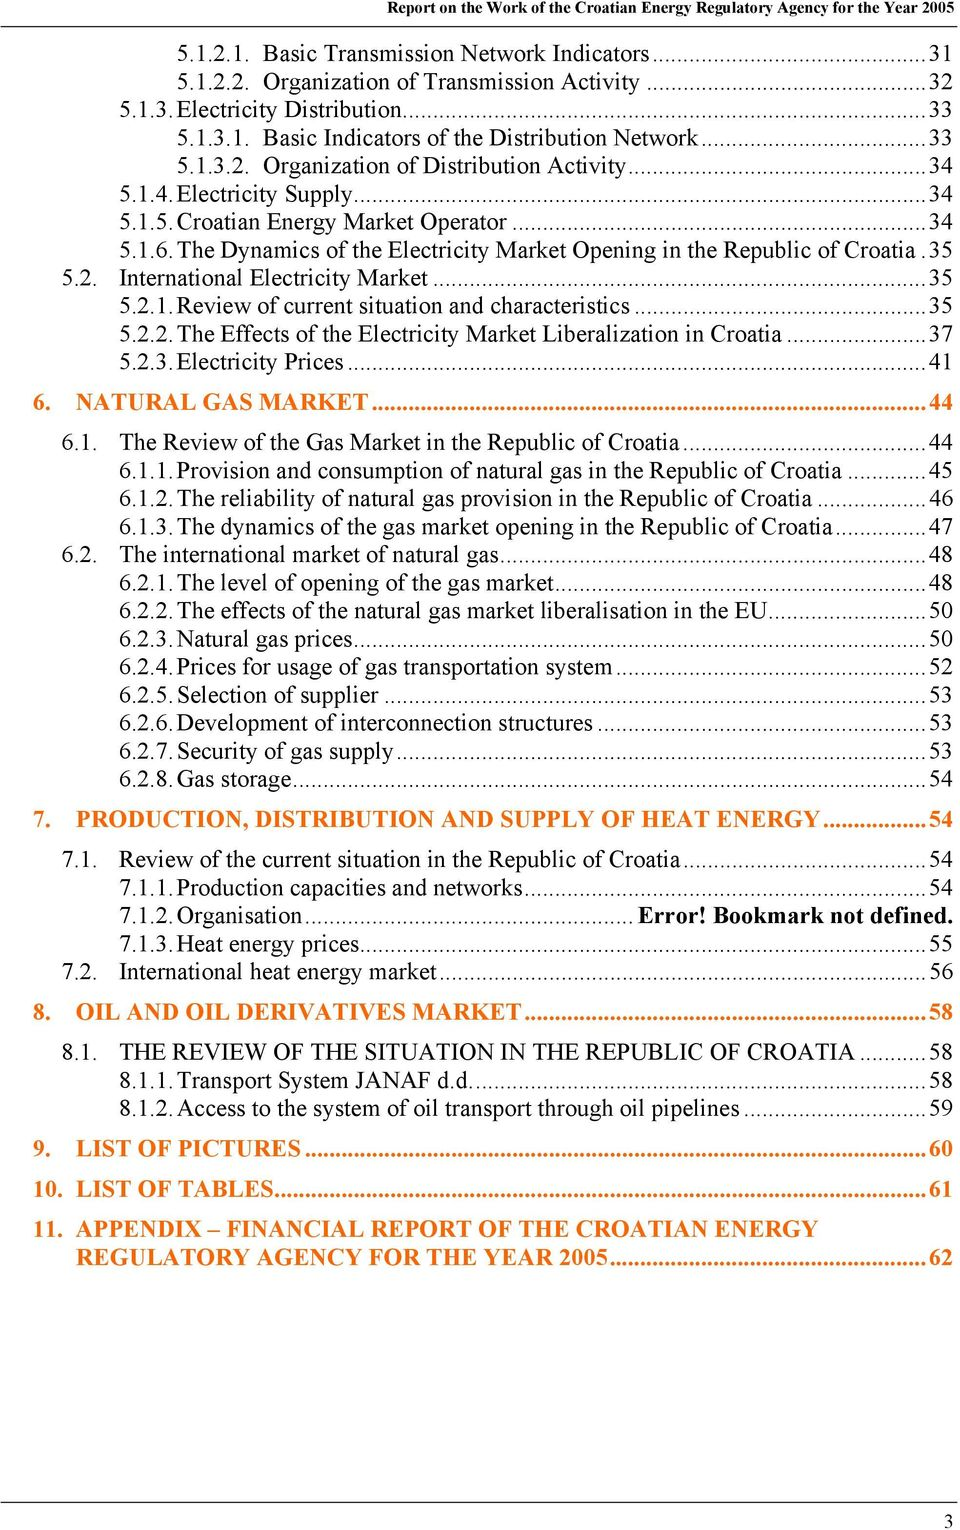 The Dynamics of the Electricity Market Opening in the Republic of Croatia.35 5.2. International Electricity Market...35 5.2.1. Review of current situation and characteristics...35 5.2.2. The Effects of the Electricity Market Liberalization in Croatia.